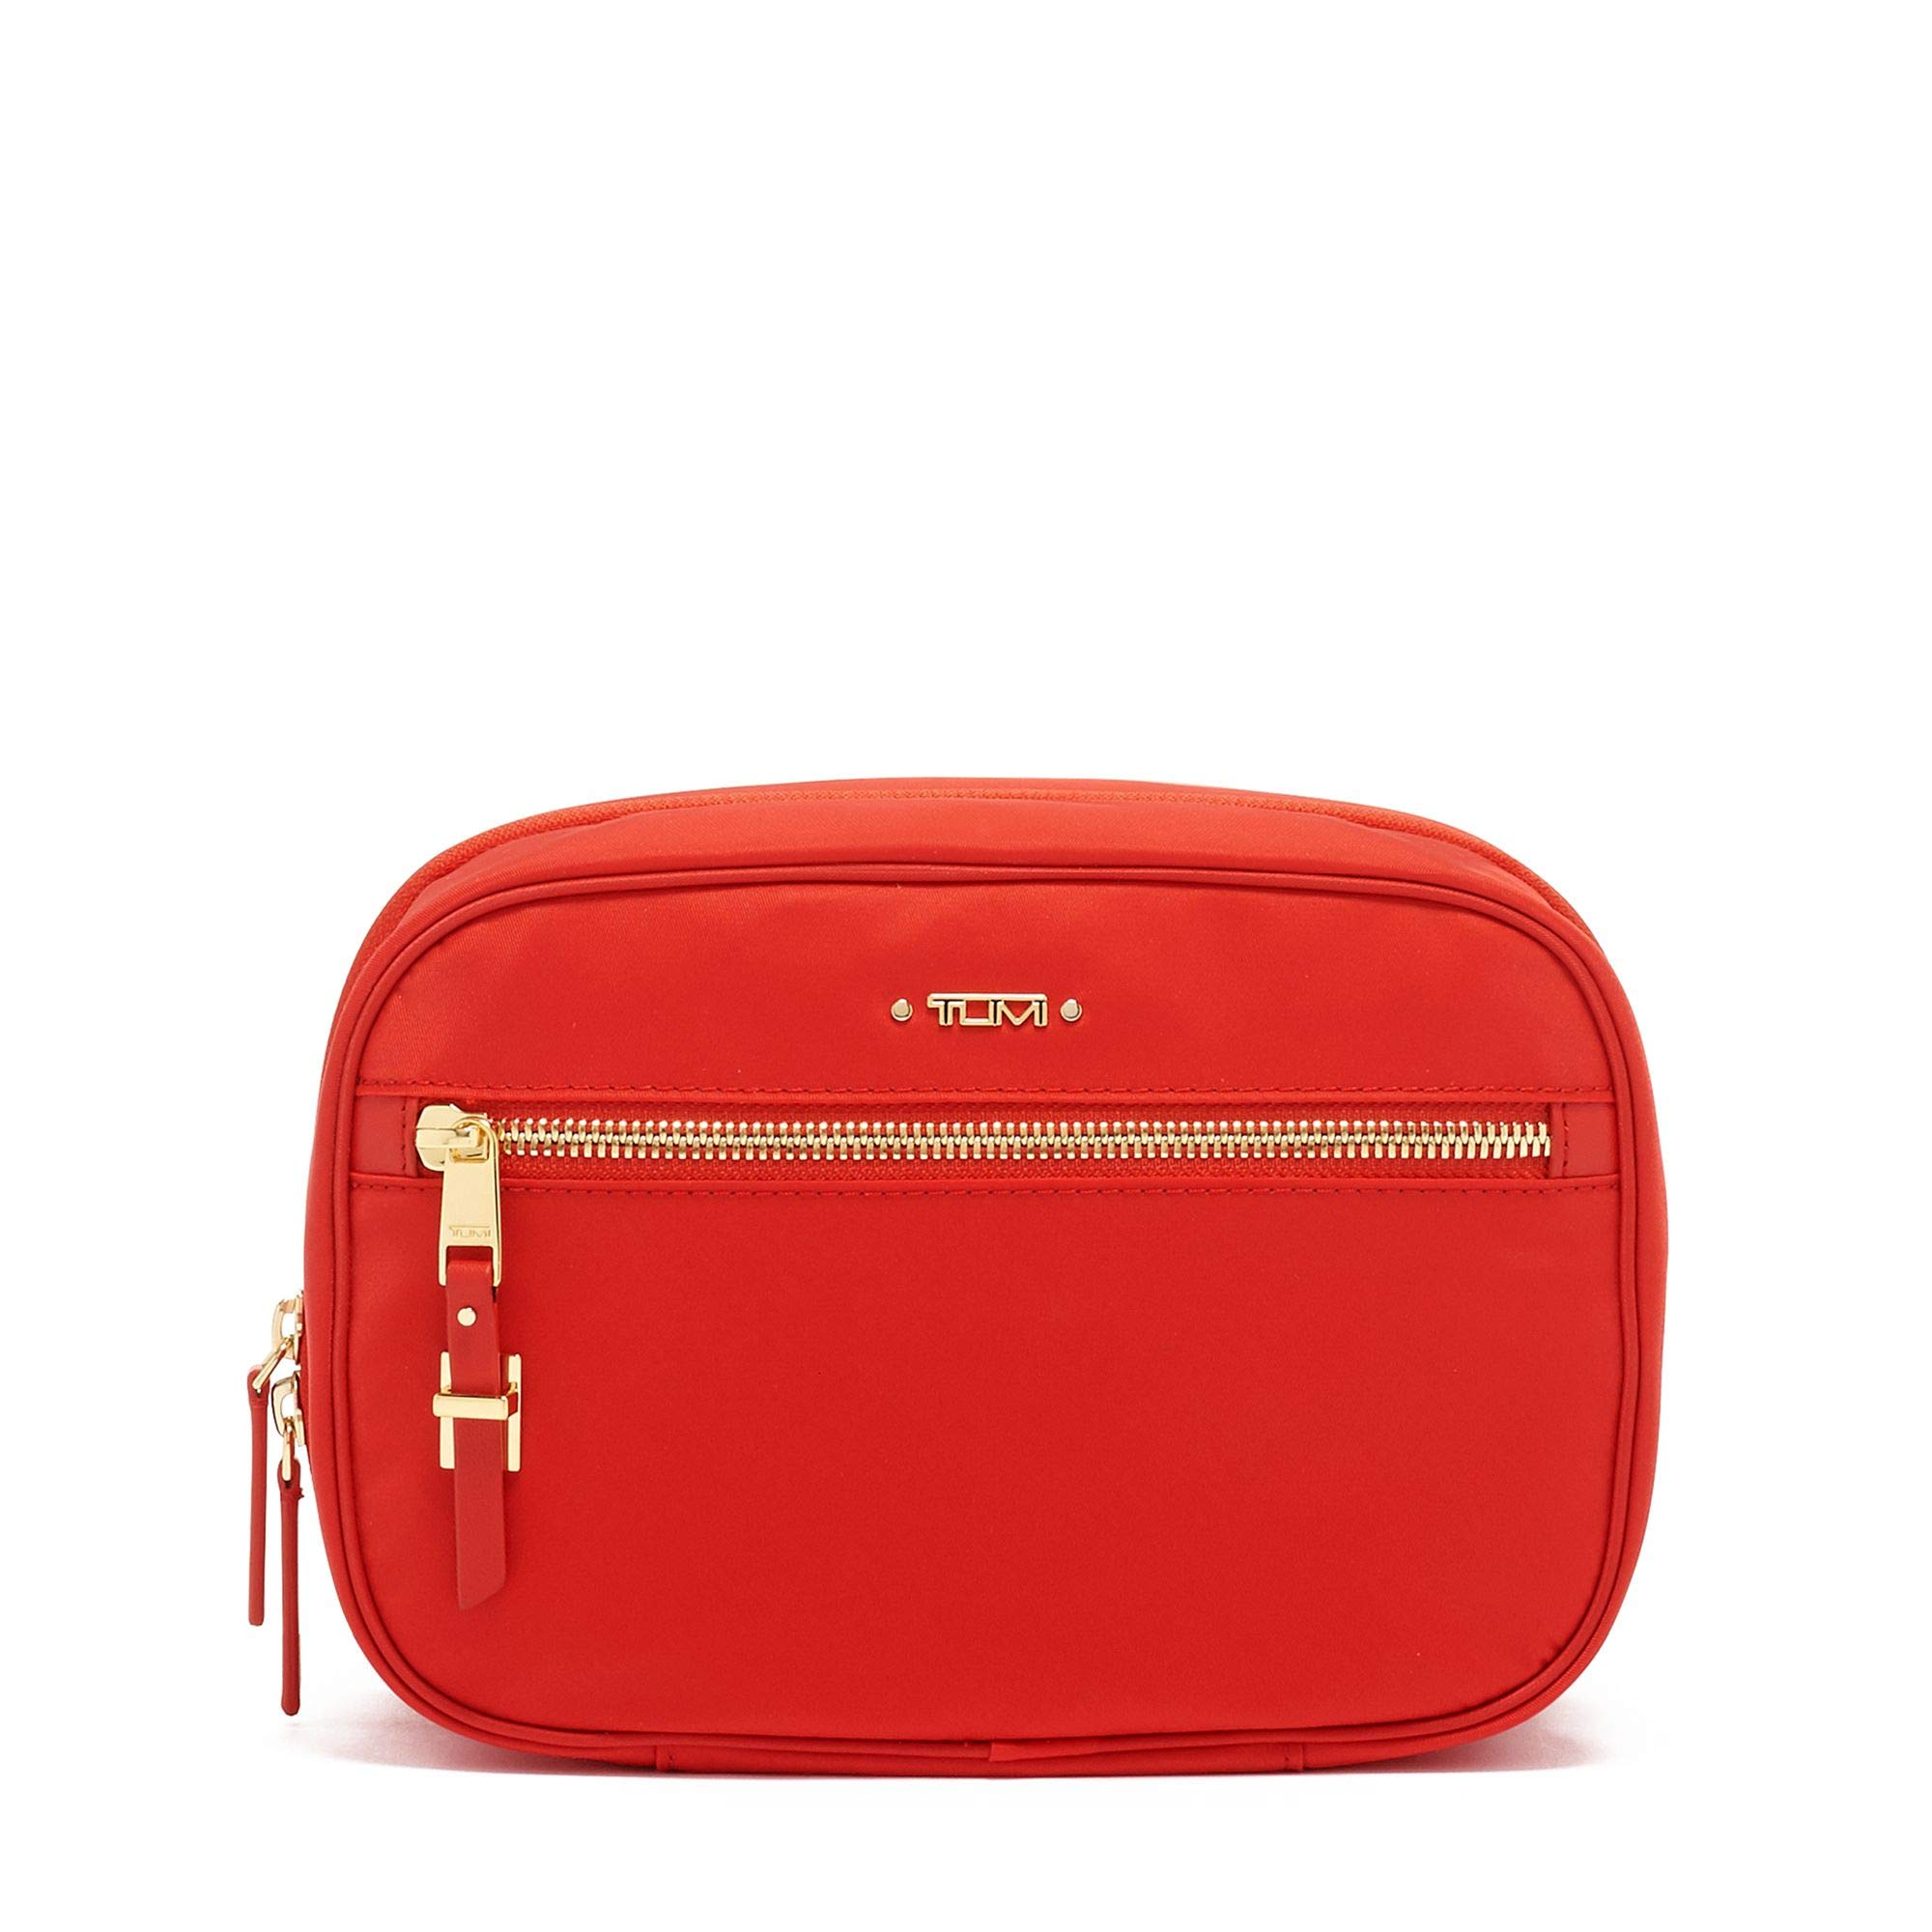 TUMI - Voyageur Yima Cosmetic Bag - Luggage Accessories Travel Kit for Women - Sunset